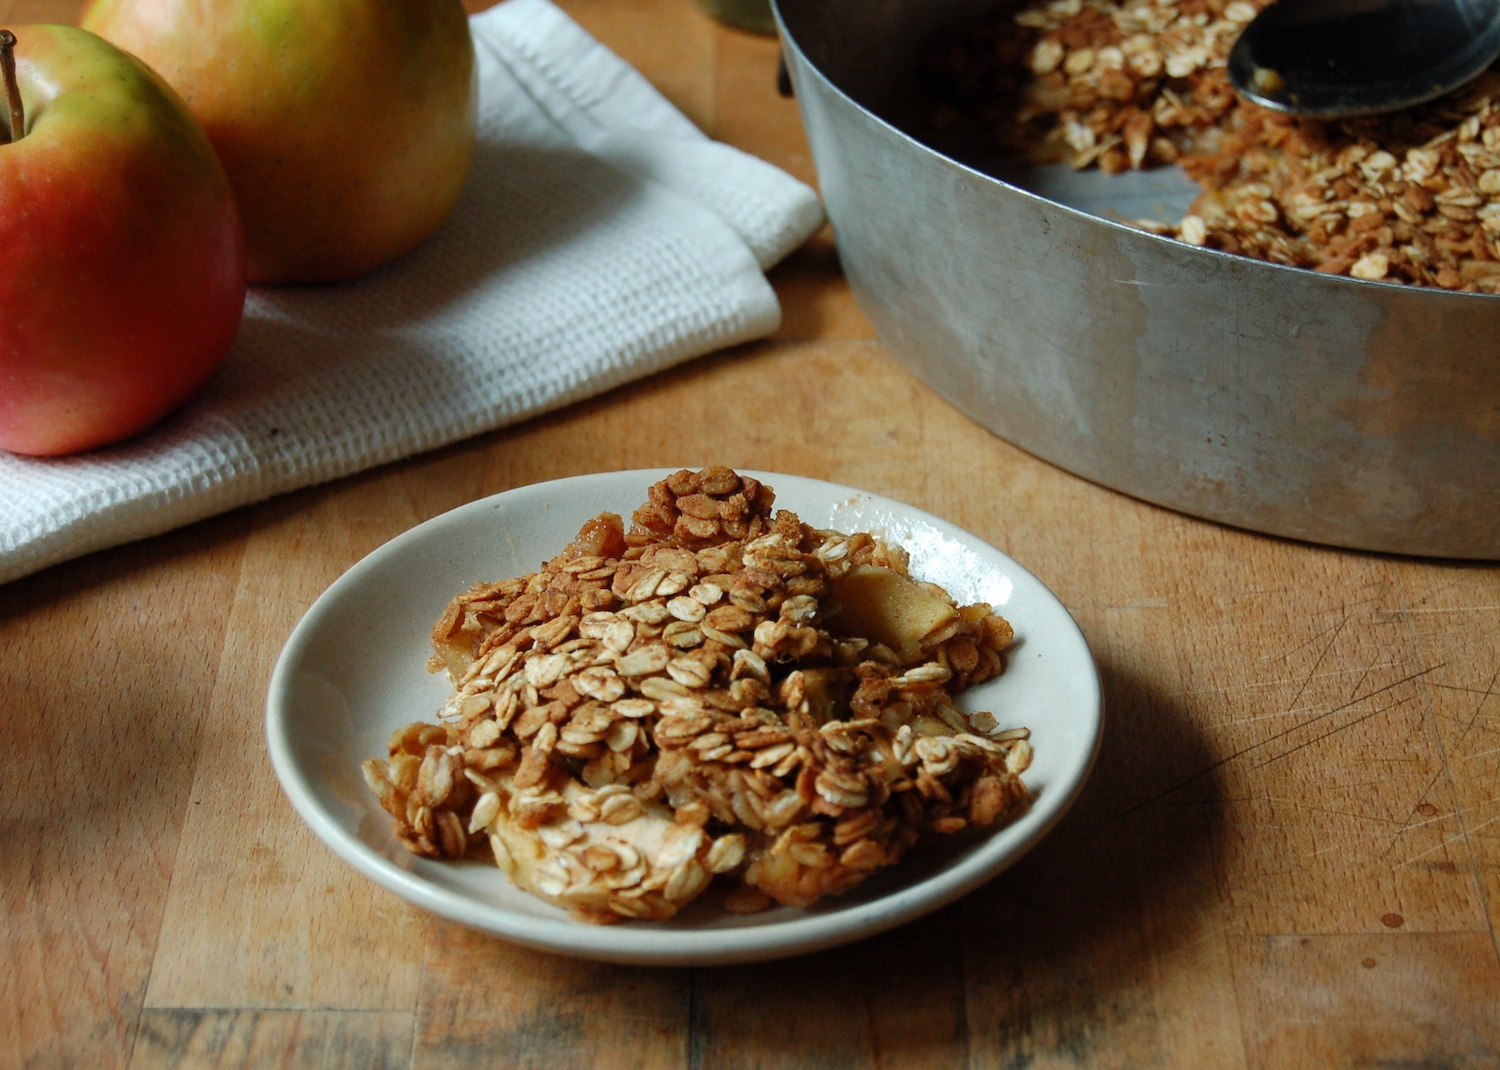 ... steaming hot baked oatmeal filled with protein, fibers and good carbs